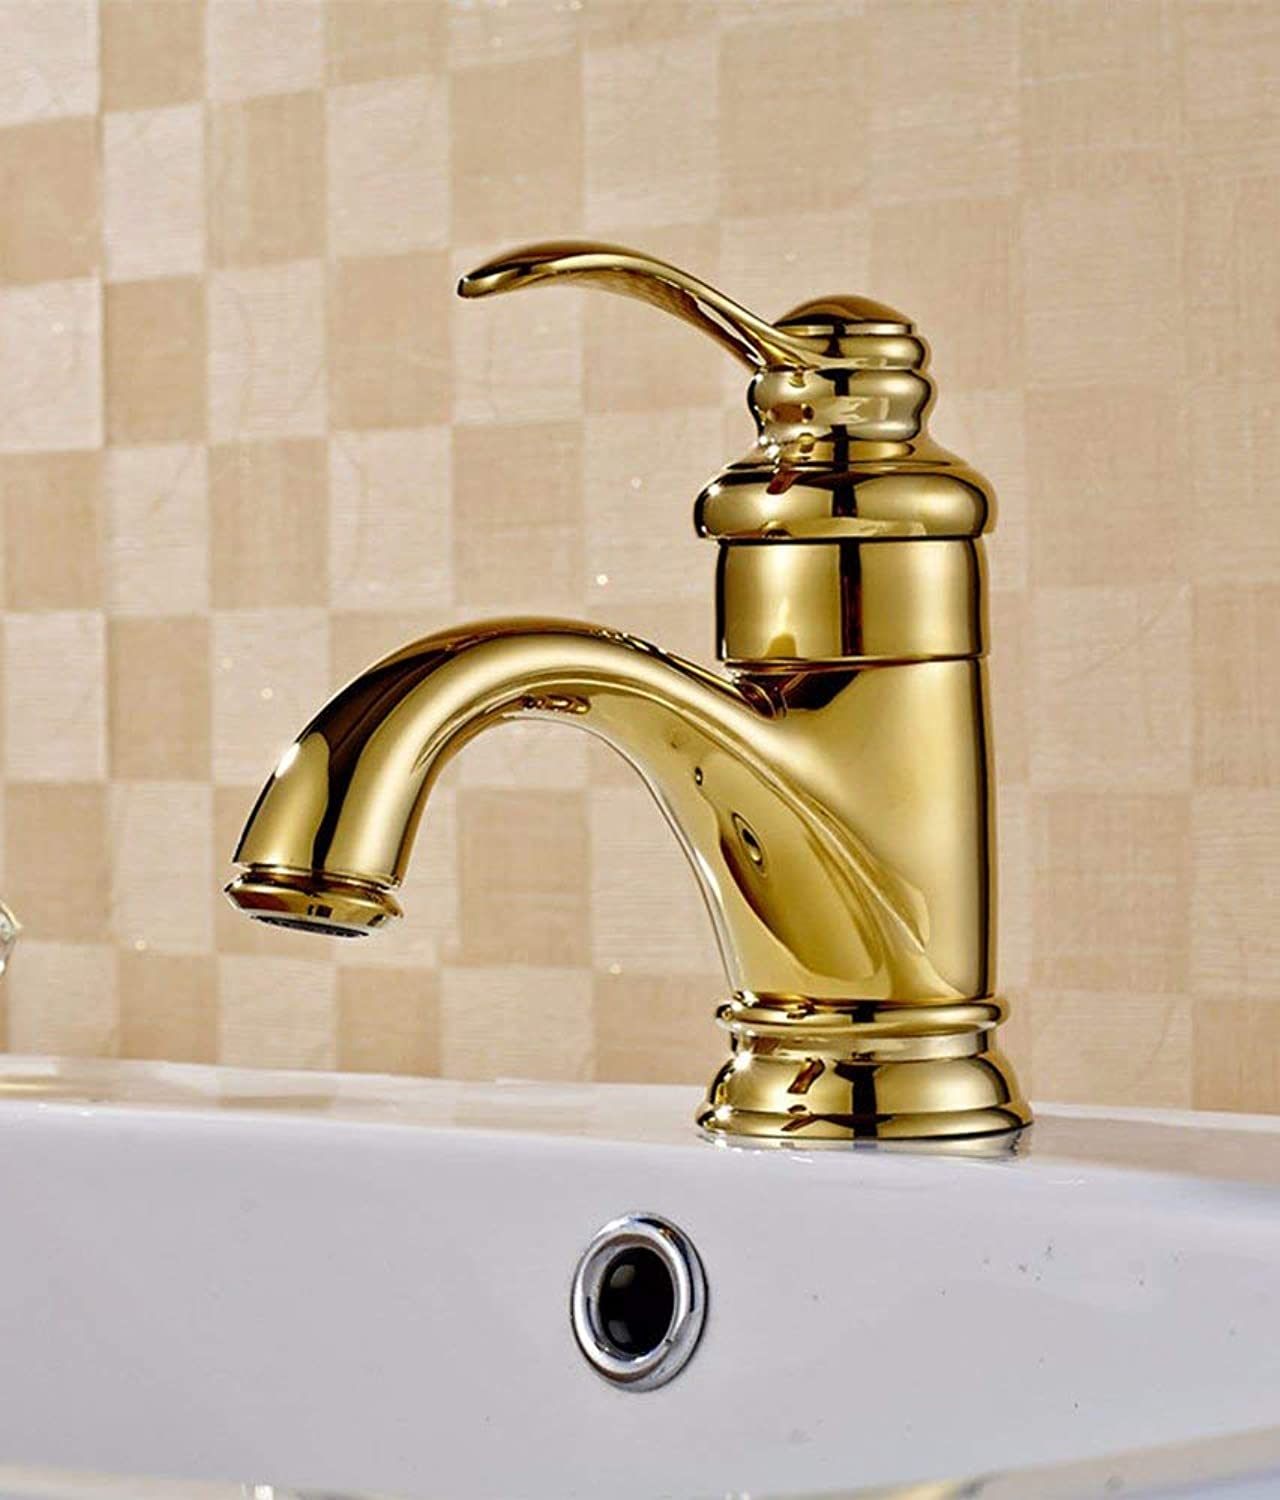 Oudan European style retro style copper hot and cold washing the face toilet bathroom water tap